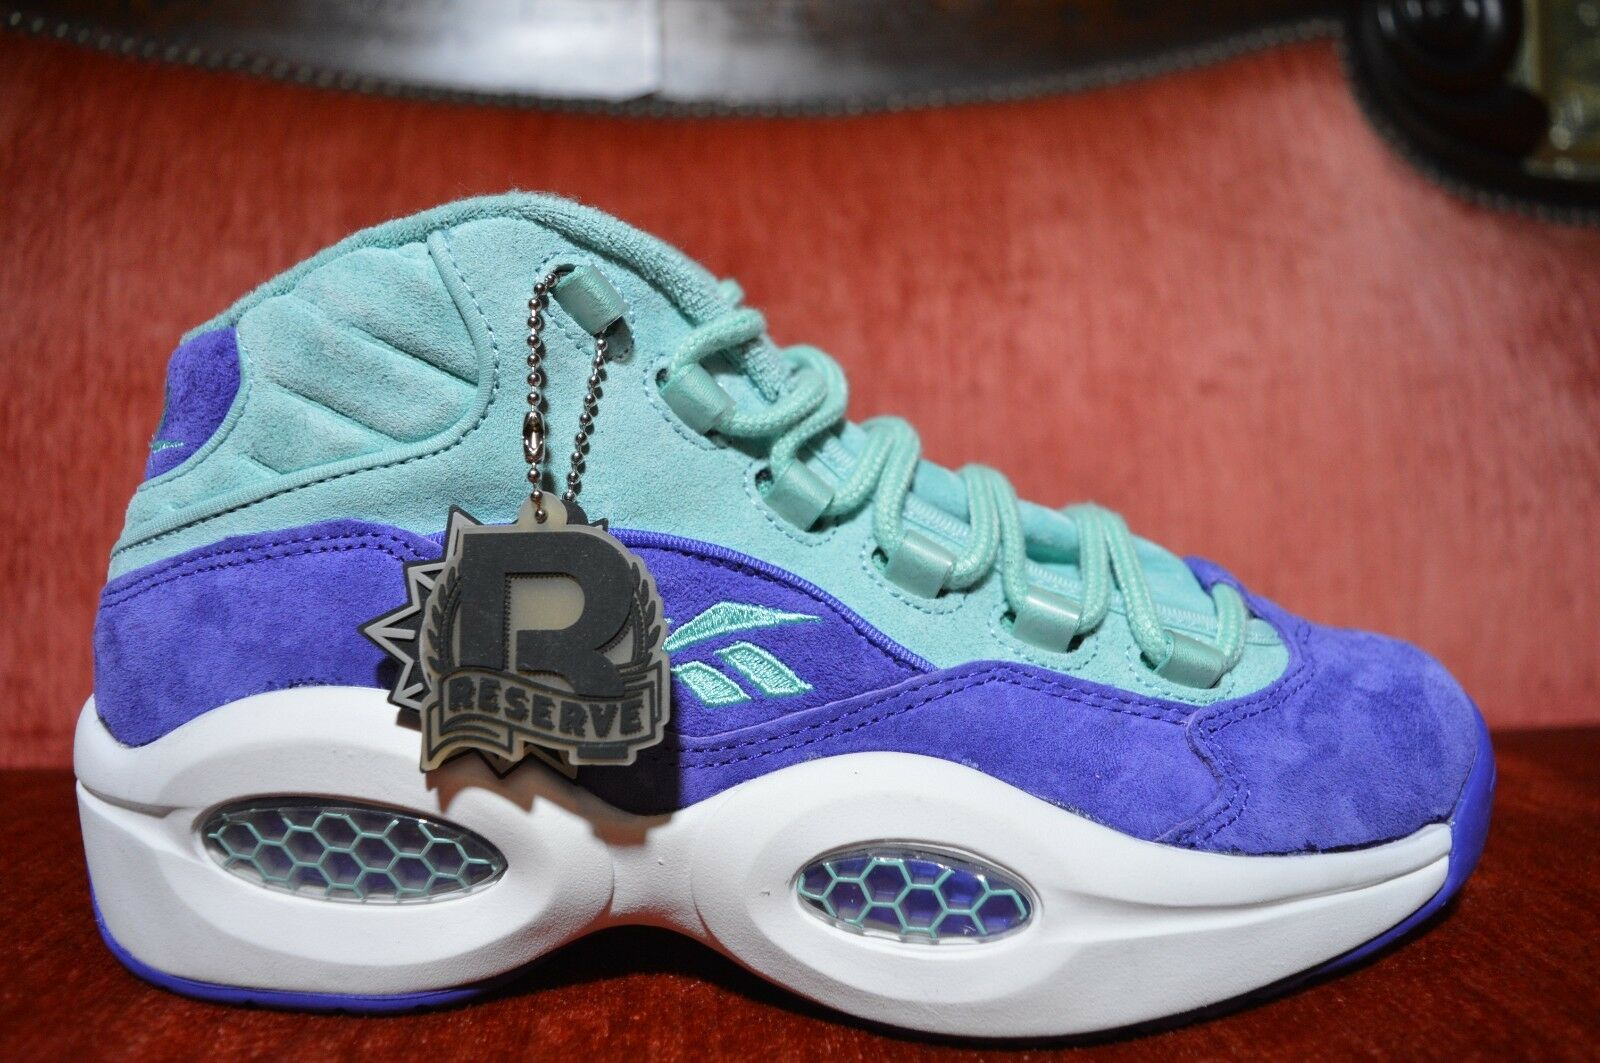 SNS x PACKER SHOES REEBOK QUESTION MID US 8.5 TOKEN NYC packers sneakersnstuff